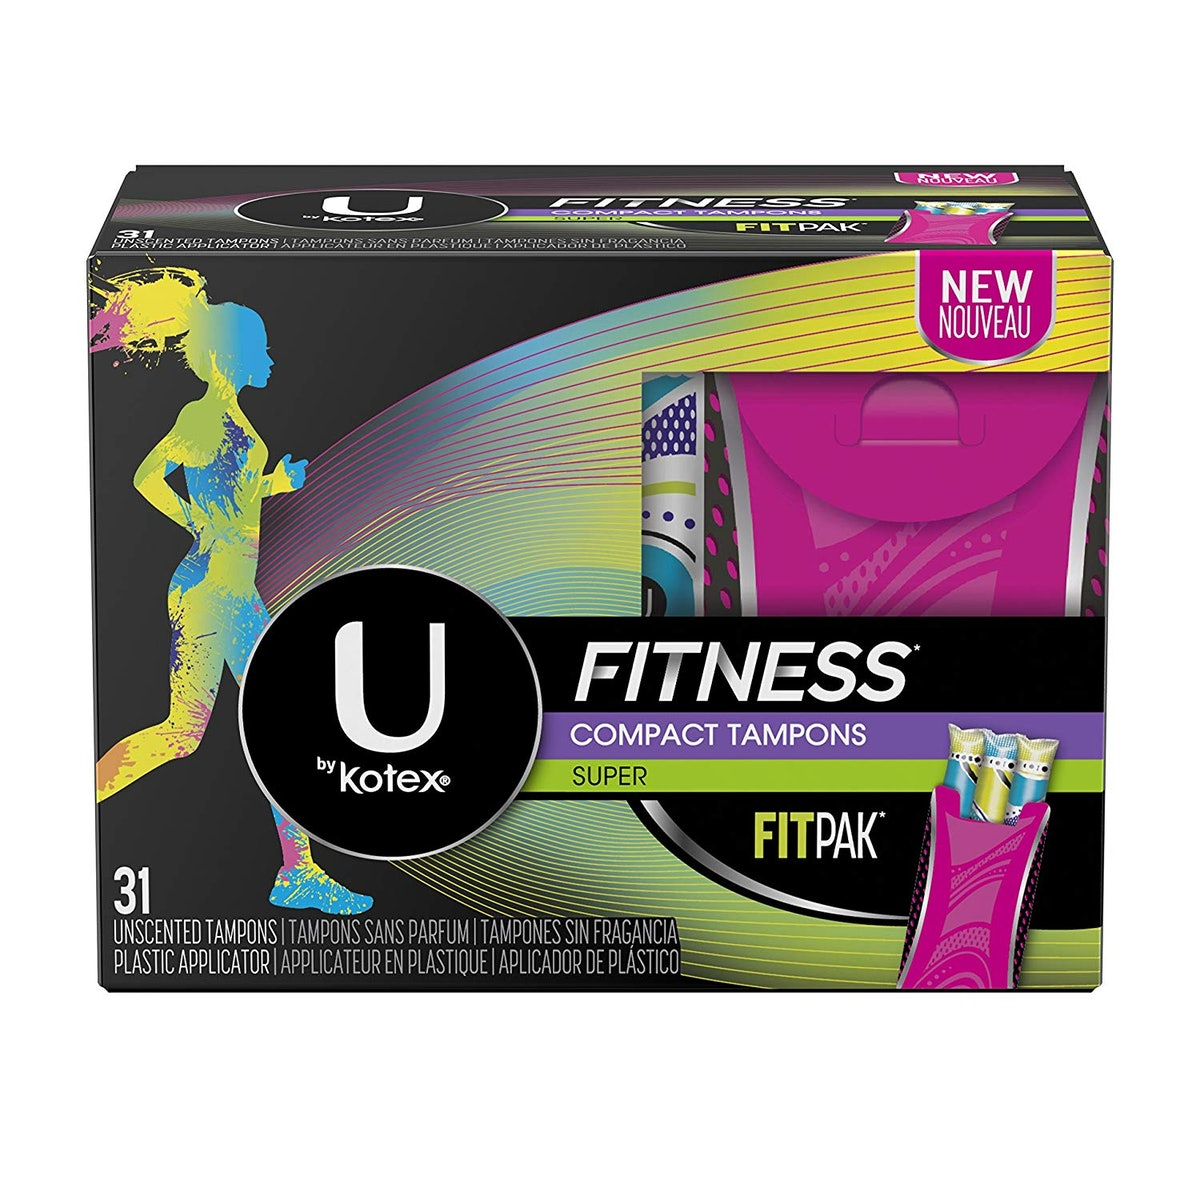 U by Kotex Fitness Tampons with Fitpak Case, Super Absorbency, 31 Count